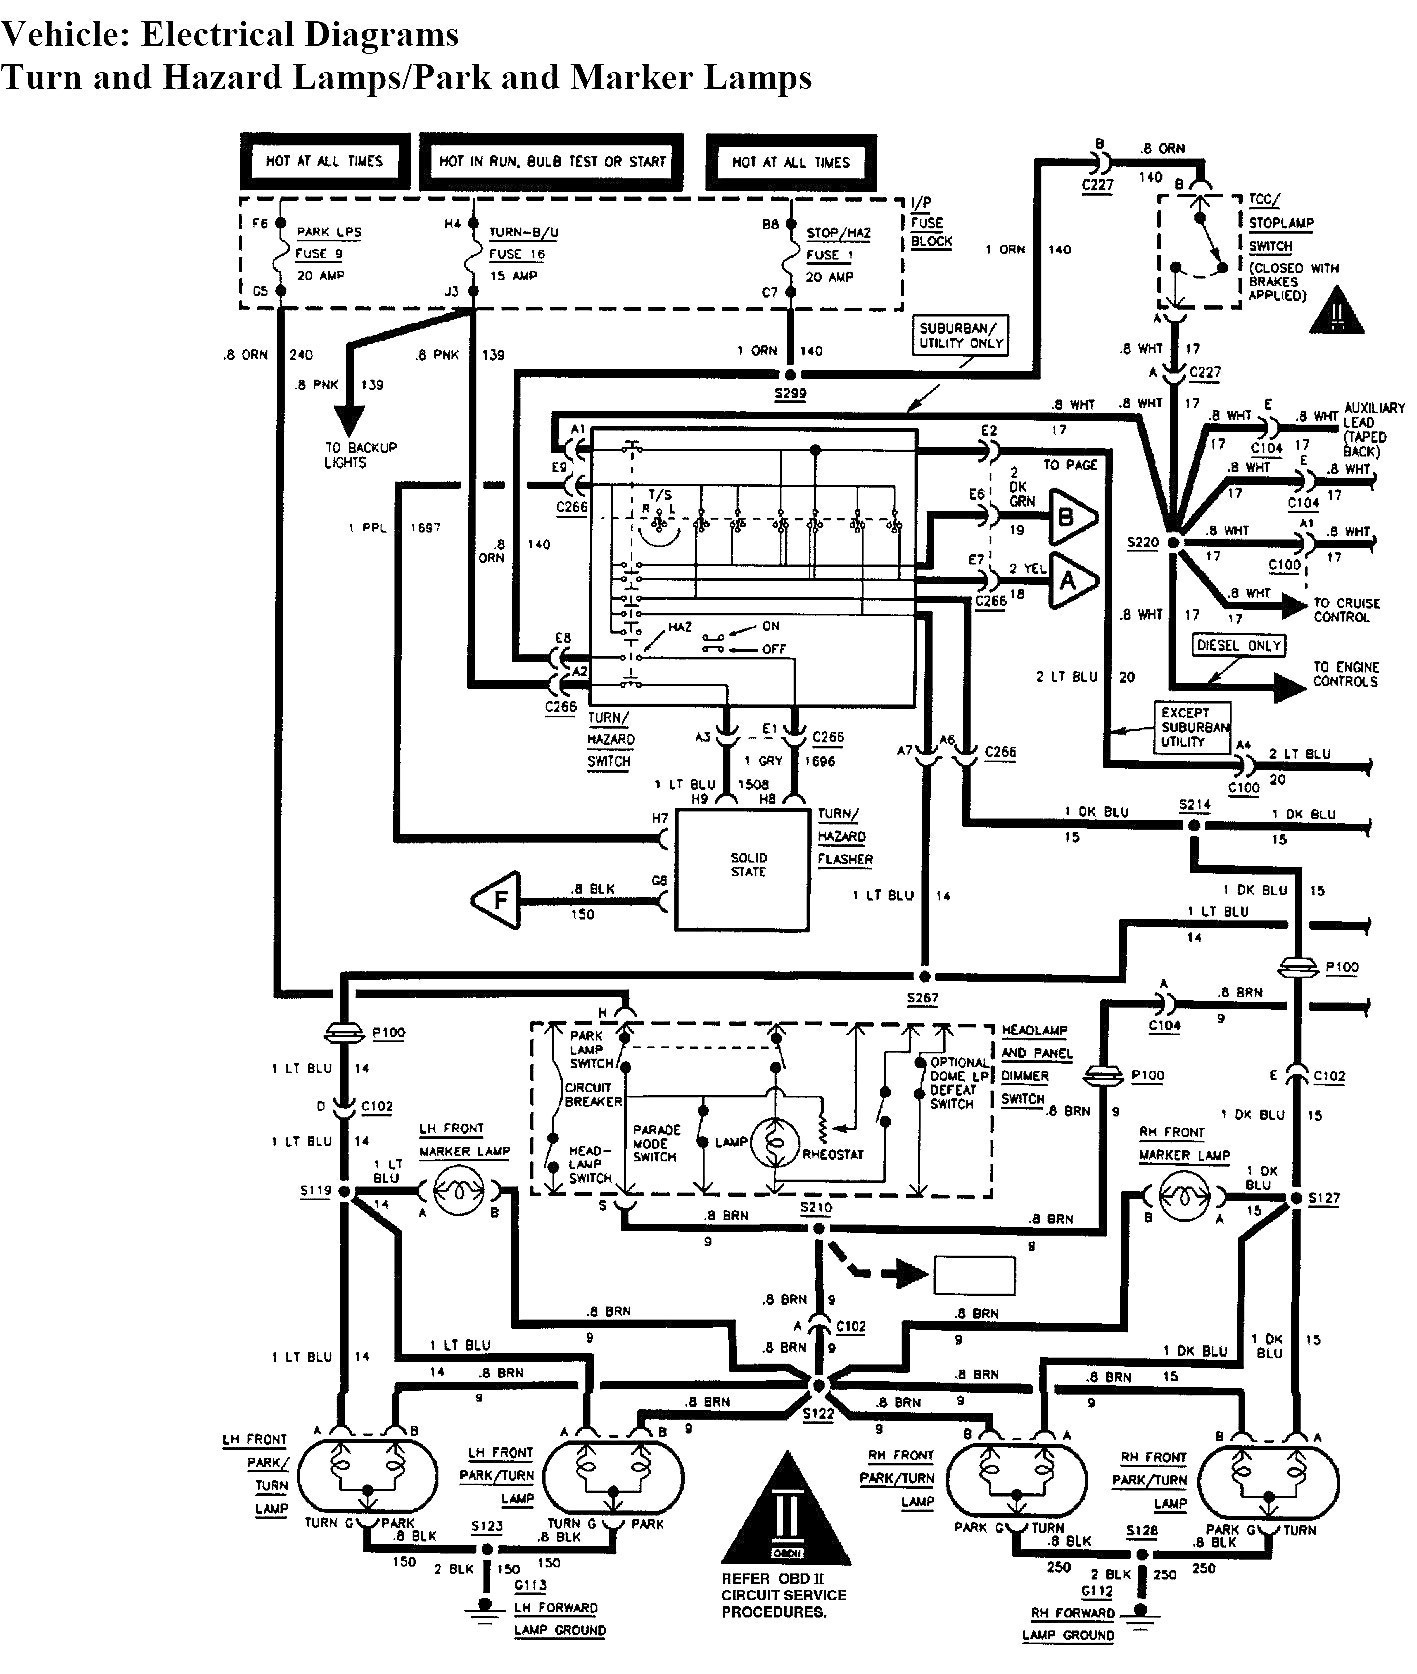 94 chevy pickup wiring diagram - mustang 5 0 engine diagram for wiring  diagram schematics  wiring diagram schematics